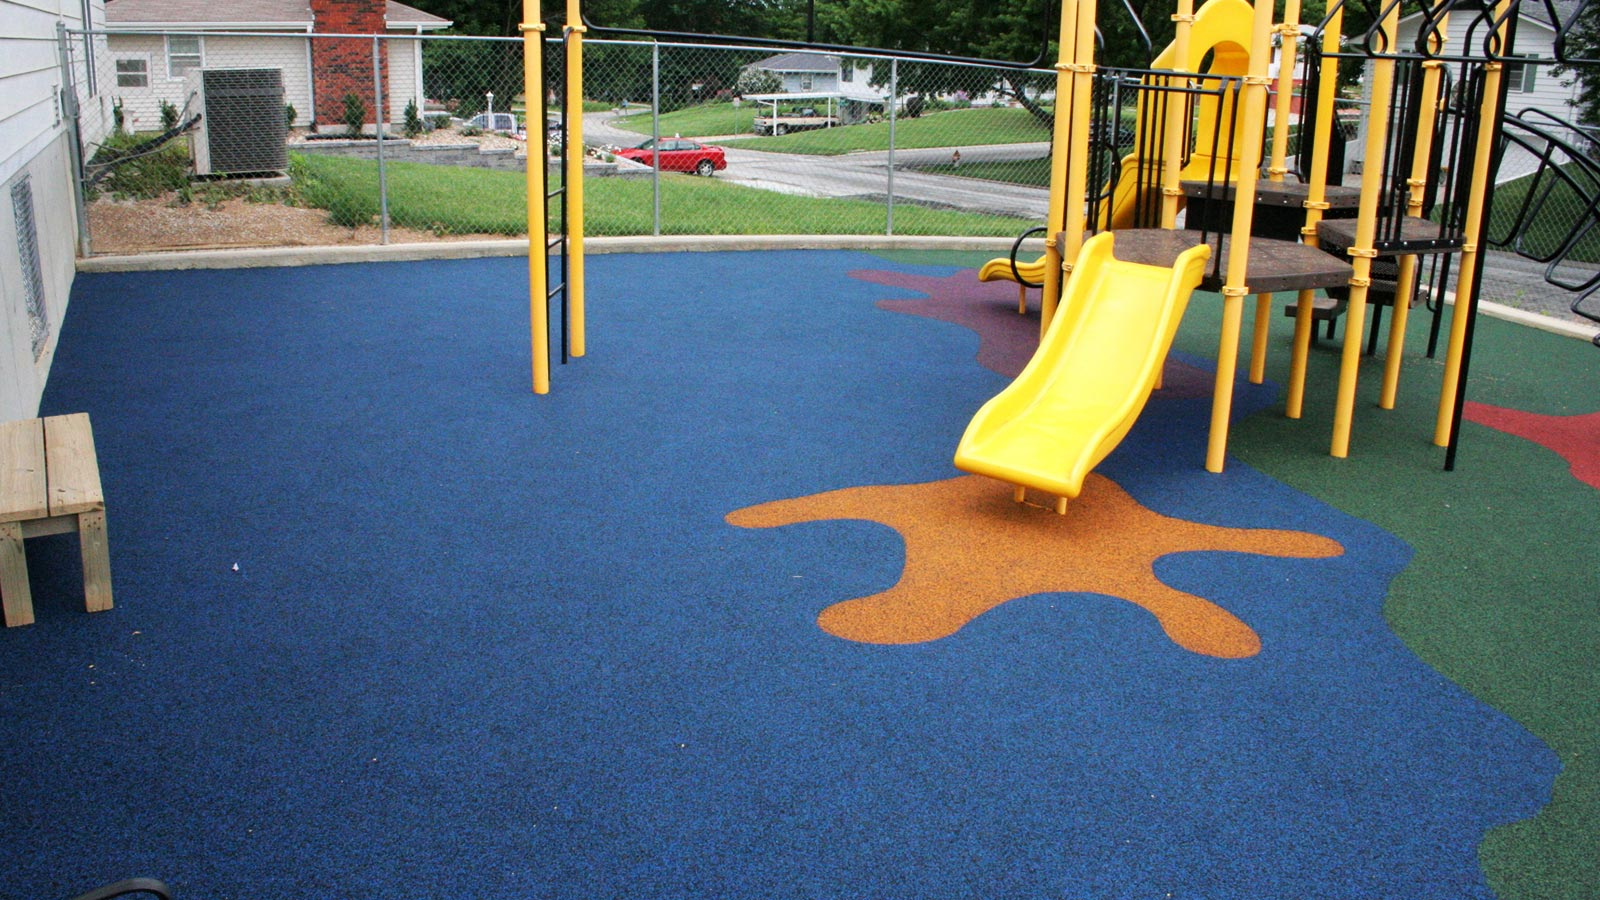 Ecoturf Surfacing Taylormade Co products Playground Turf Maintenance